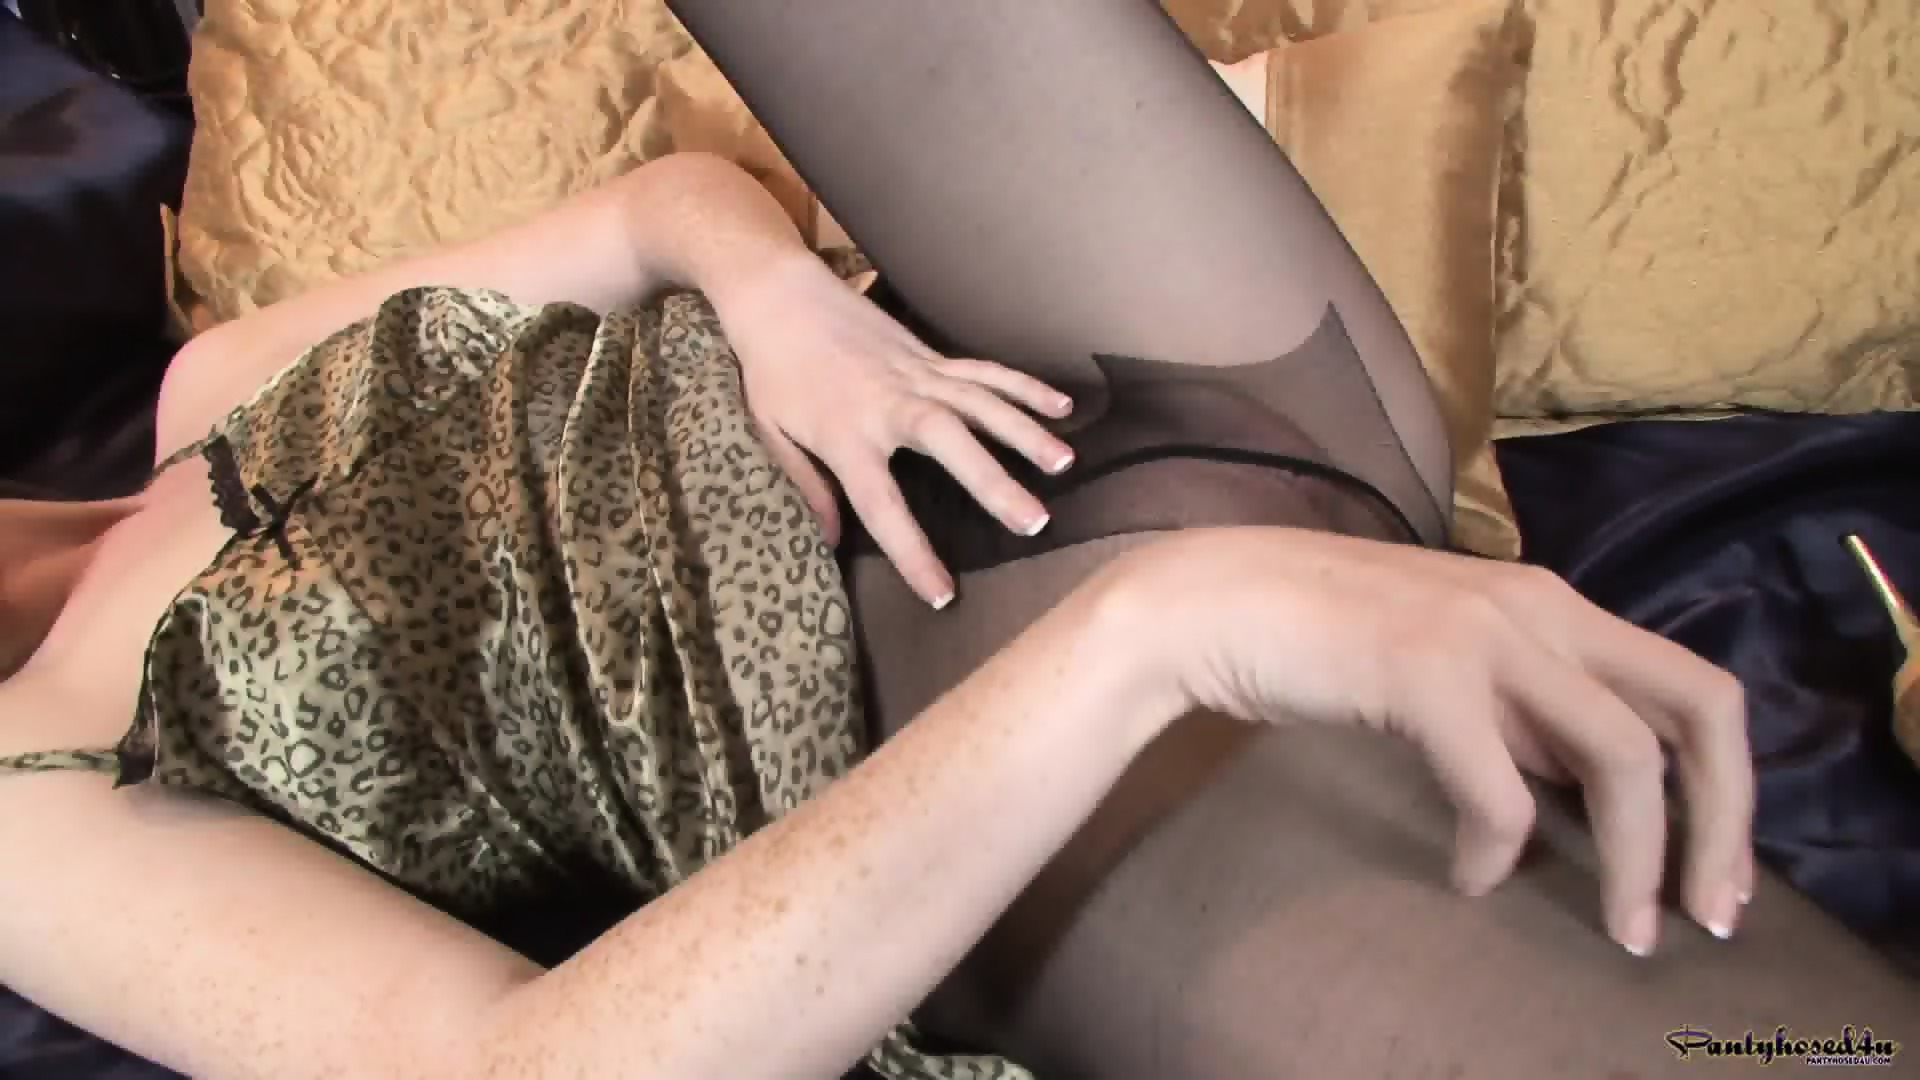 Mature pussy in pantyhose sorry, that